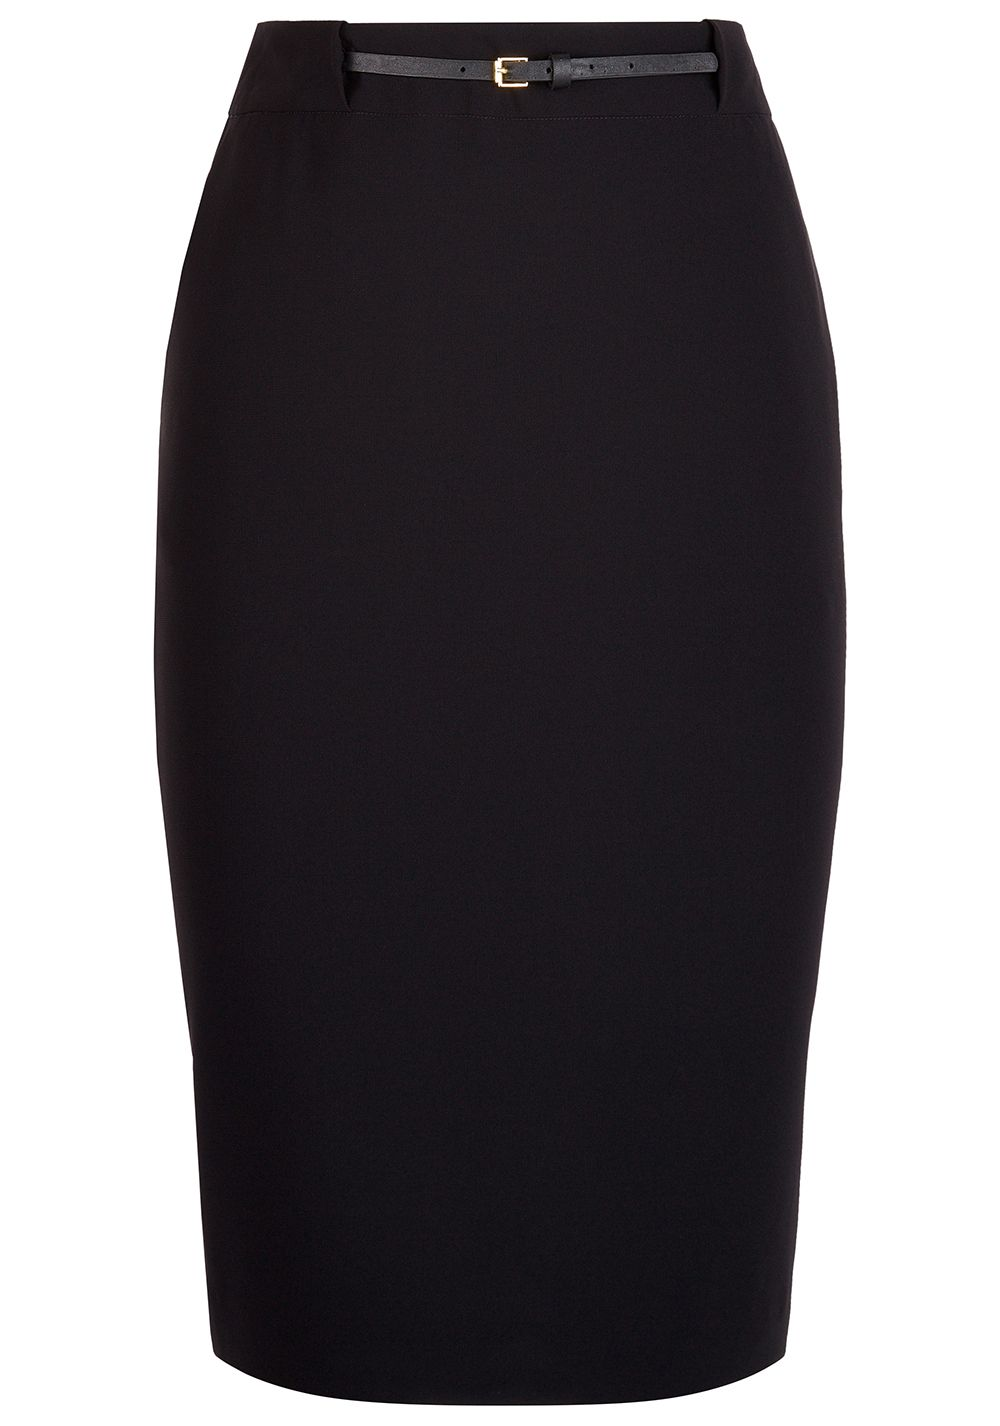 Damsel in a Dress Carrington Skirt, Black